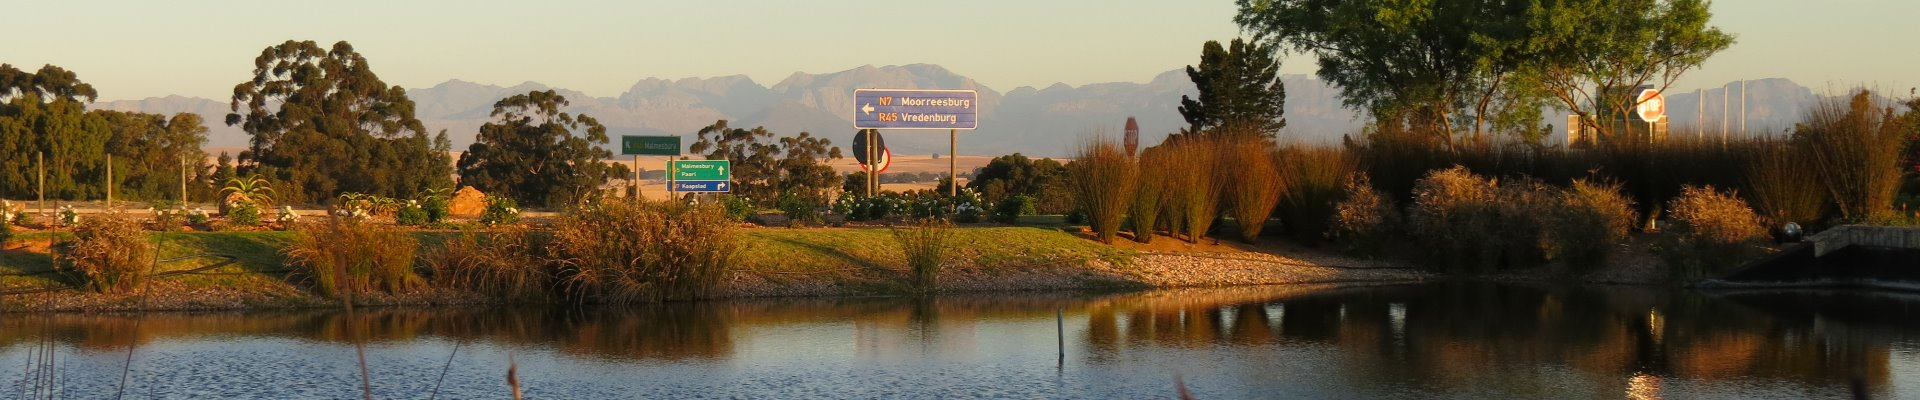 mount royal malmesbury 04